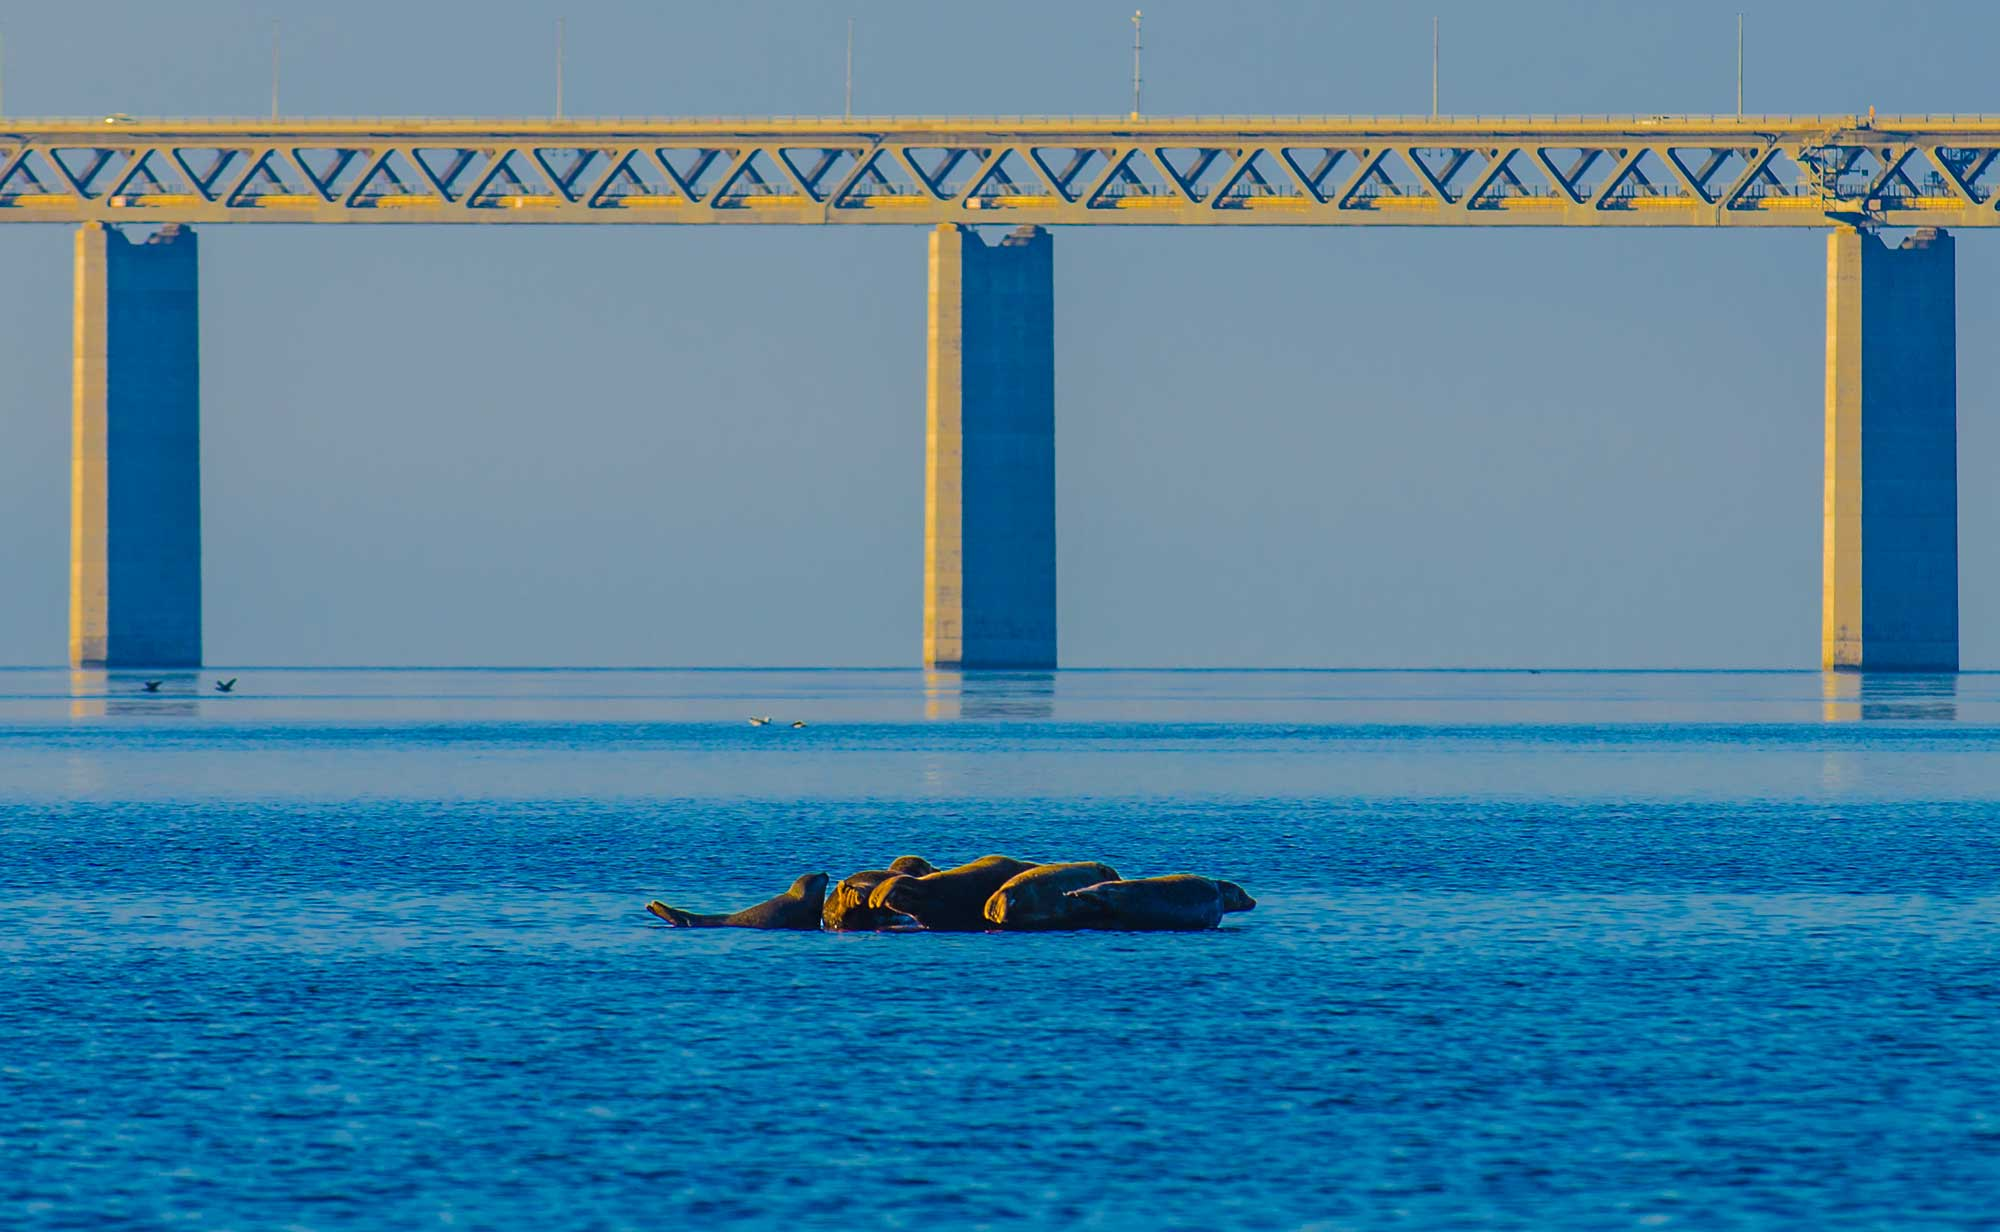 Øresund Bridge Seal colony resting on stone - krestenhillerup.dk